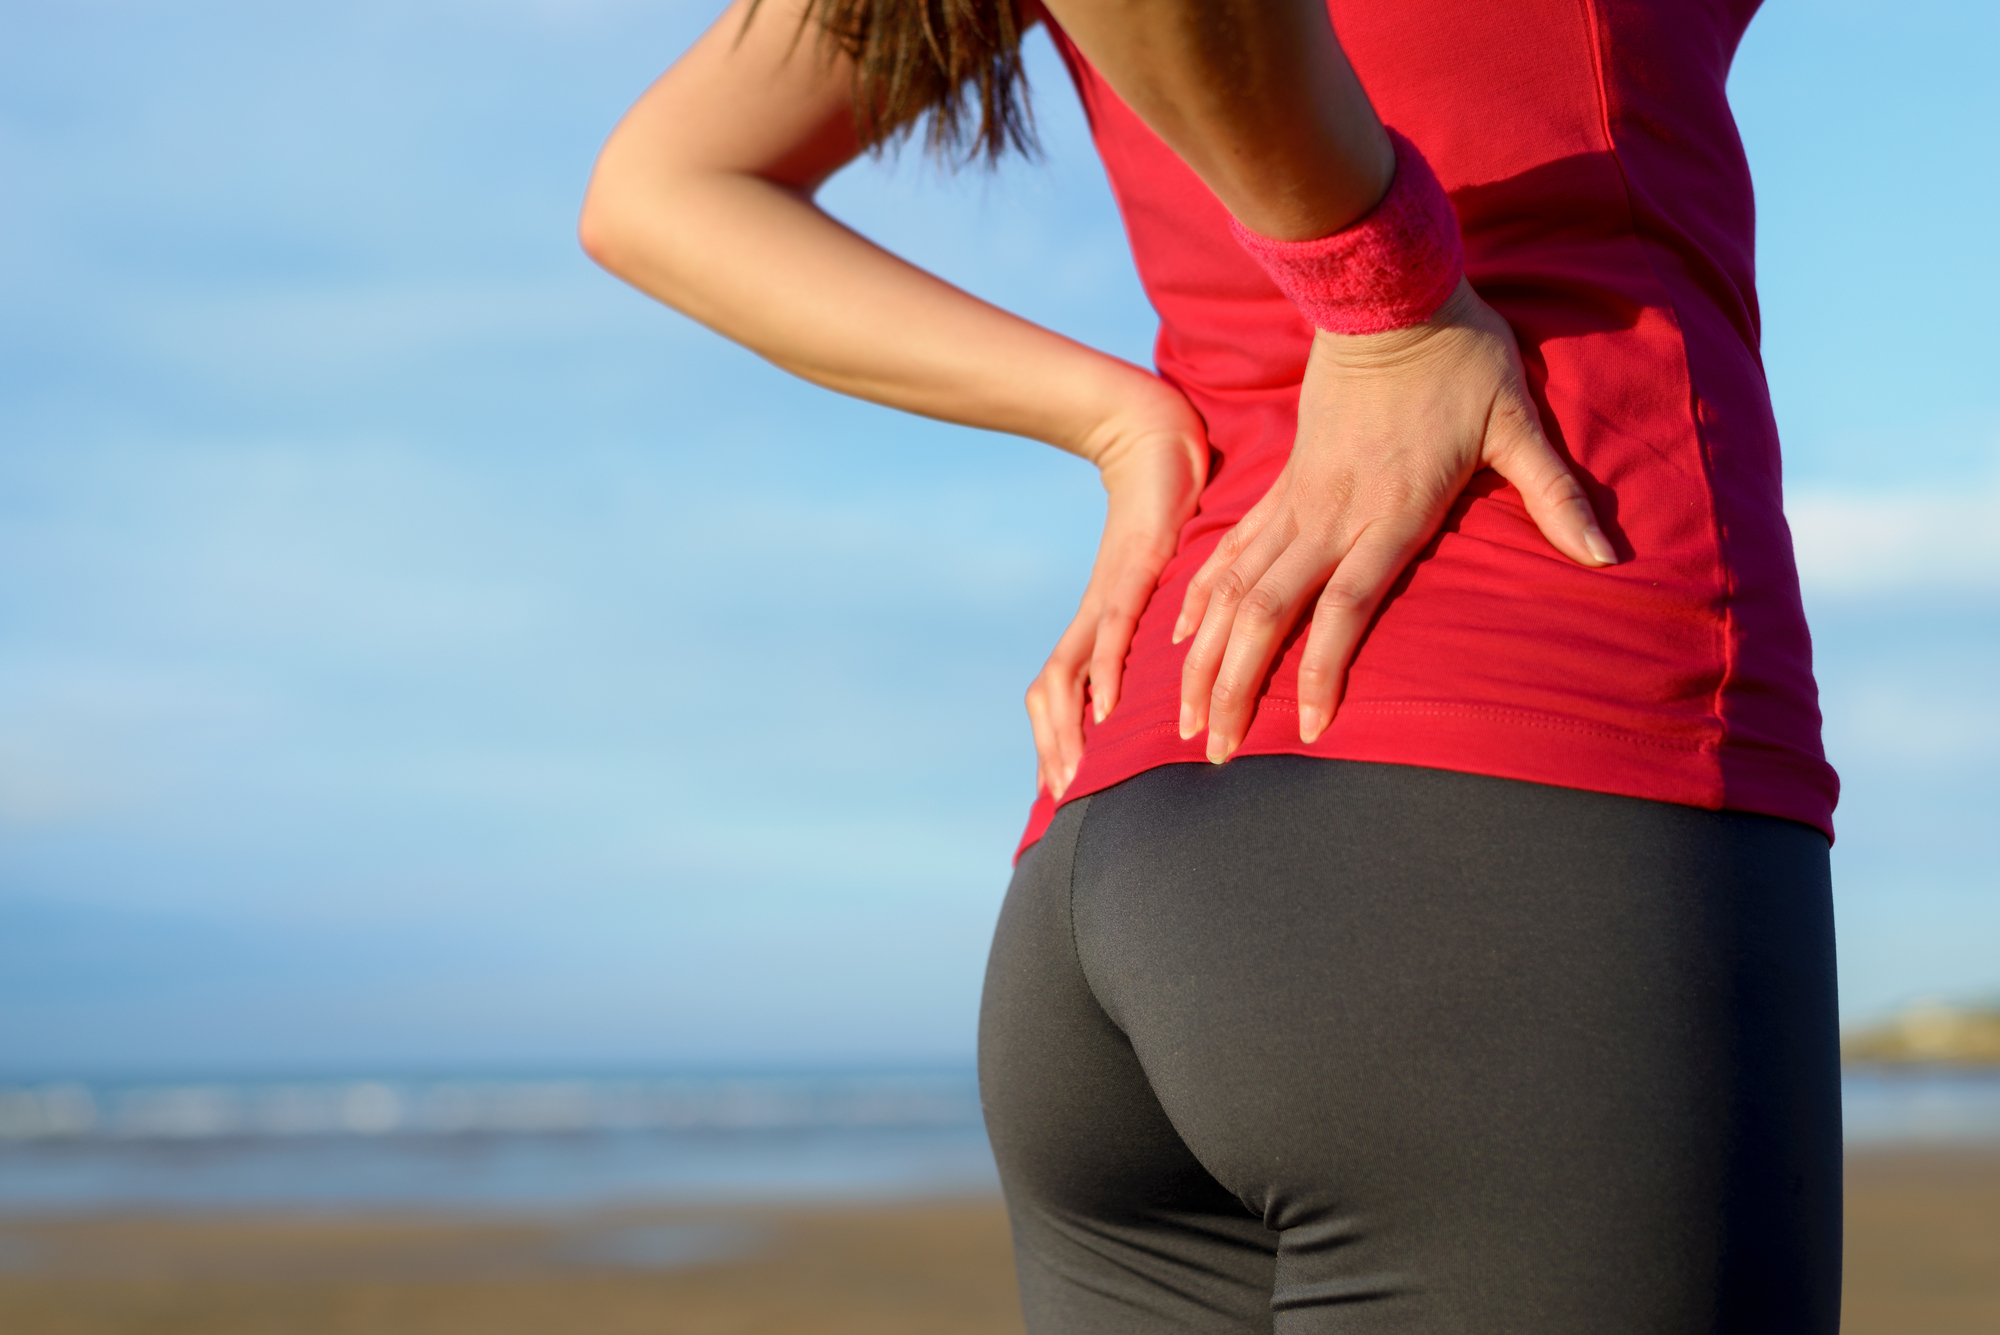 What Causes Sciatica Buttock Pain